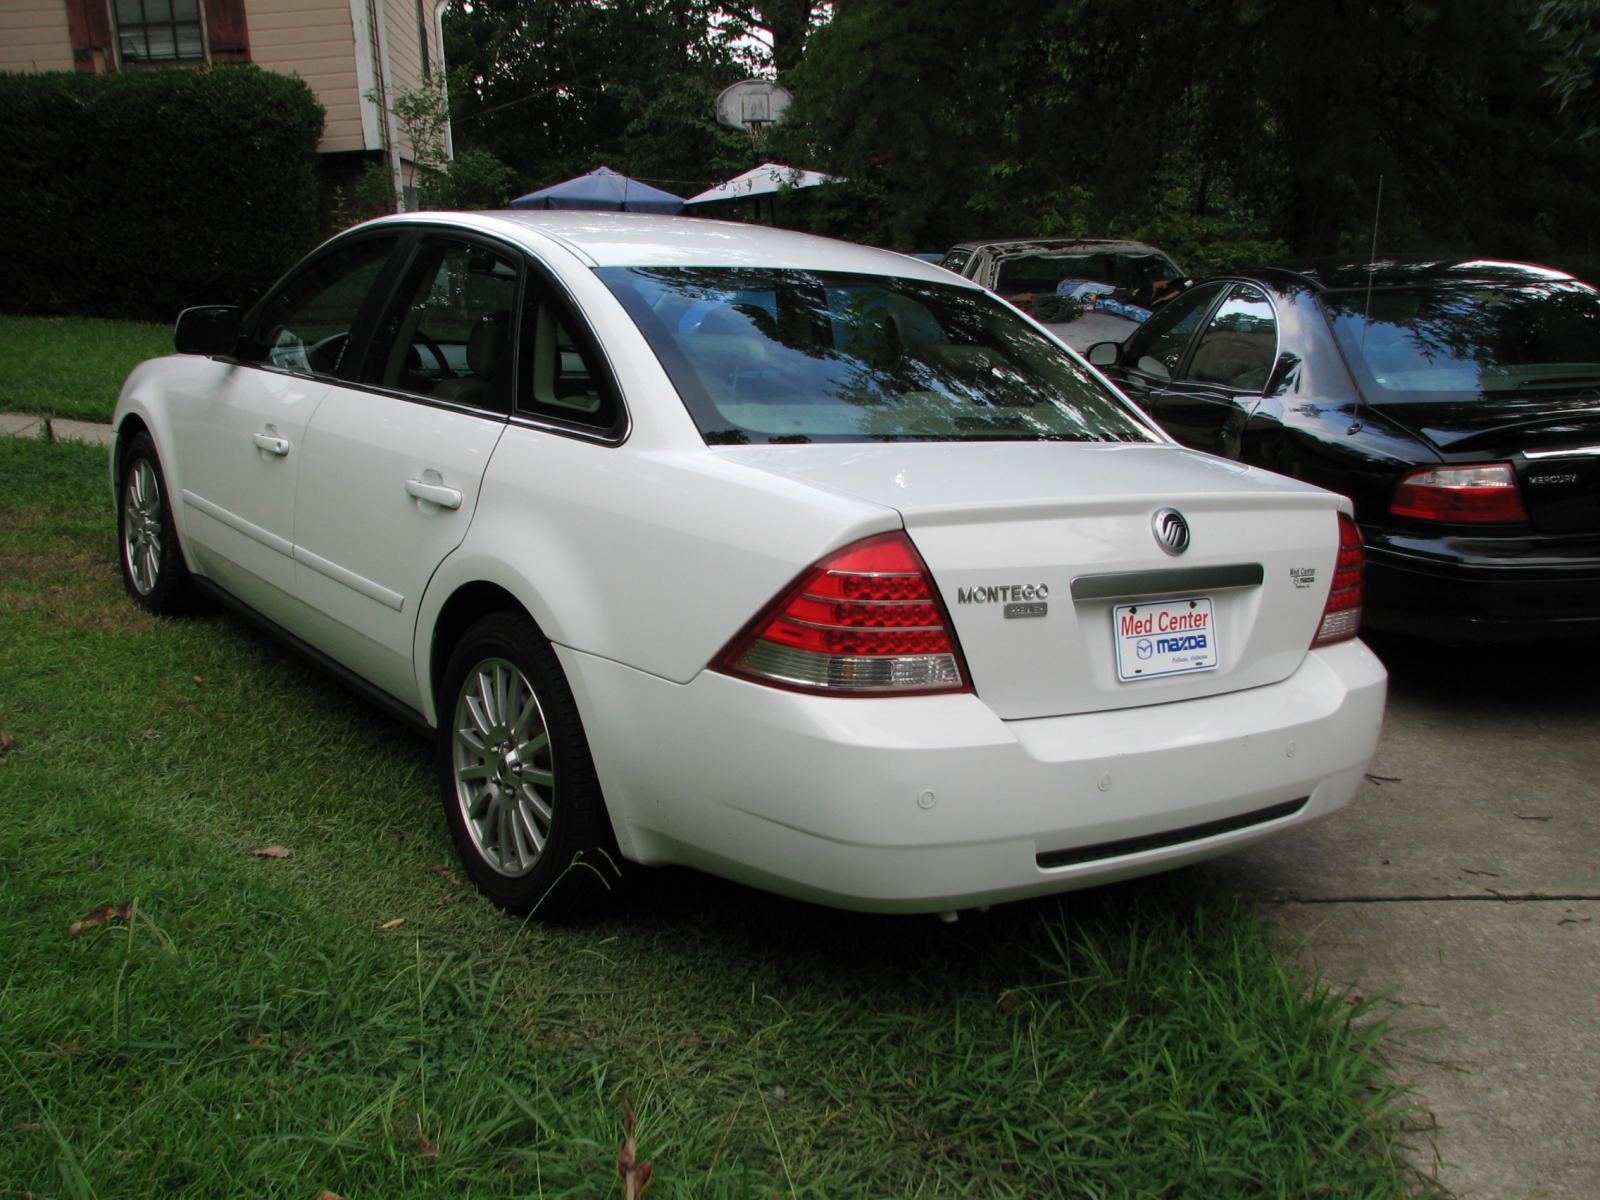 D New Car Montego Img on 2005 Ford Taurus Engine